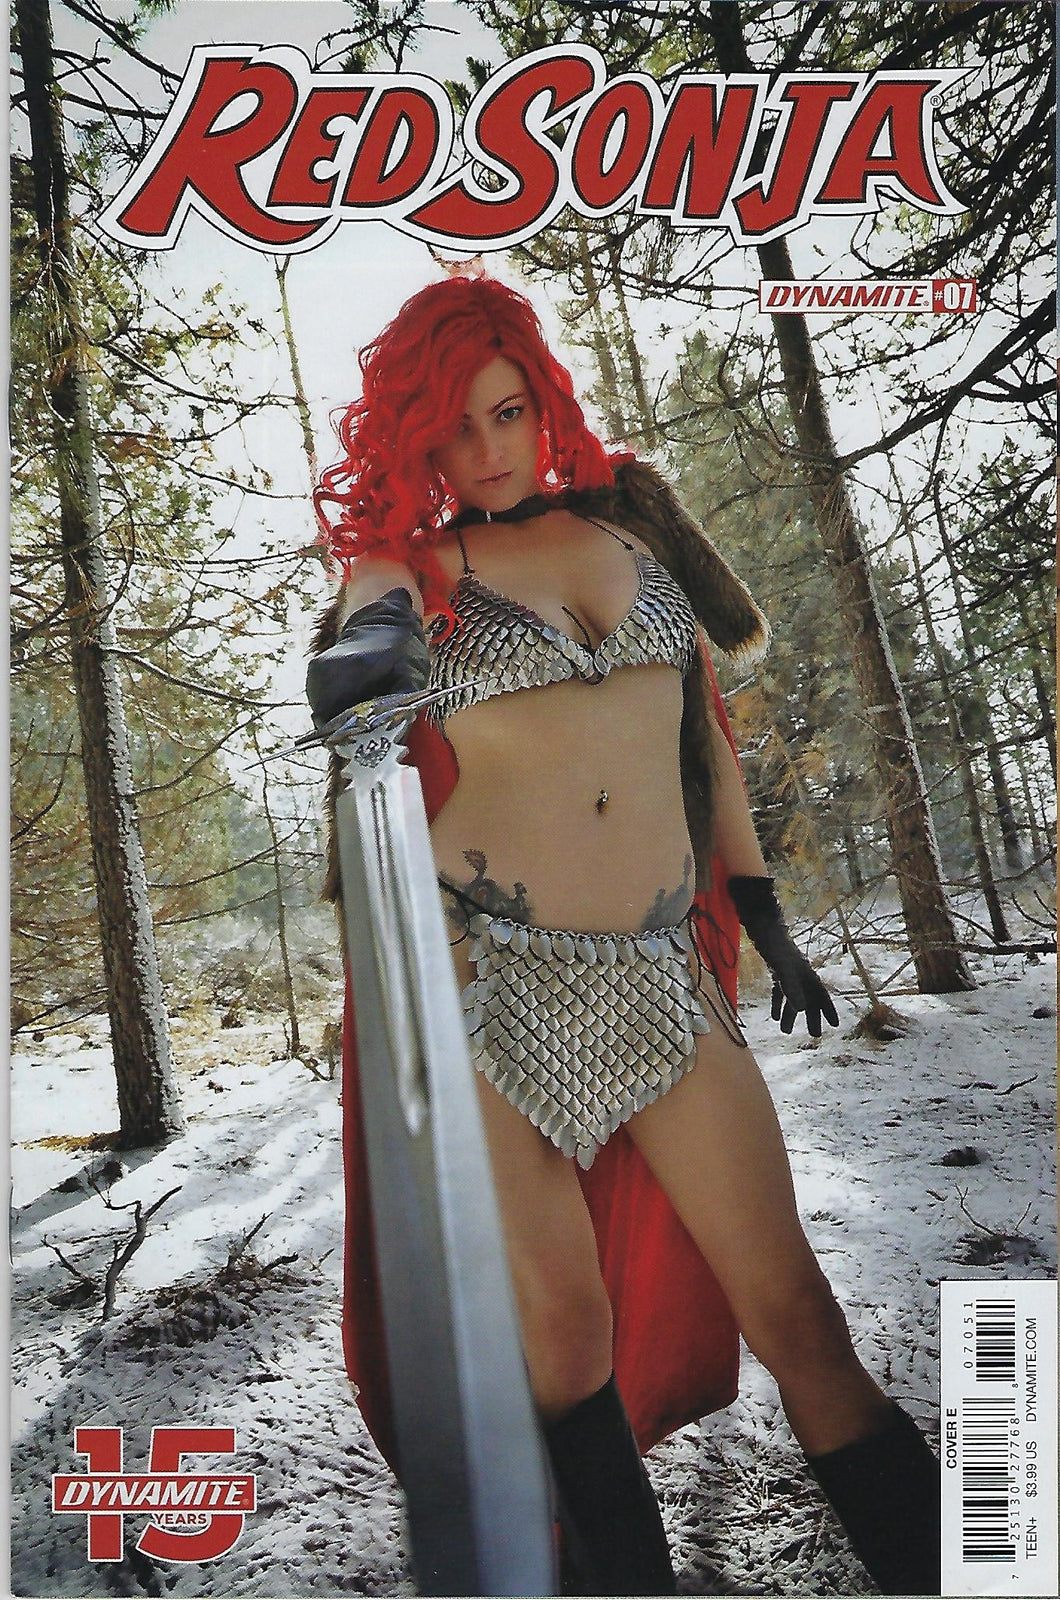 Red Sonja # 7 Layne Mychael Cosplay Photo Variant Cover